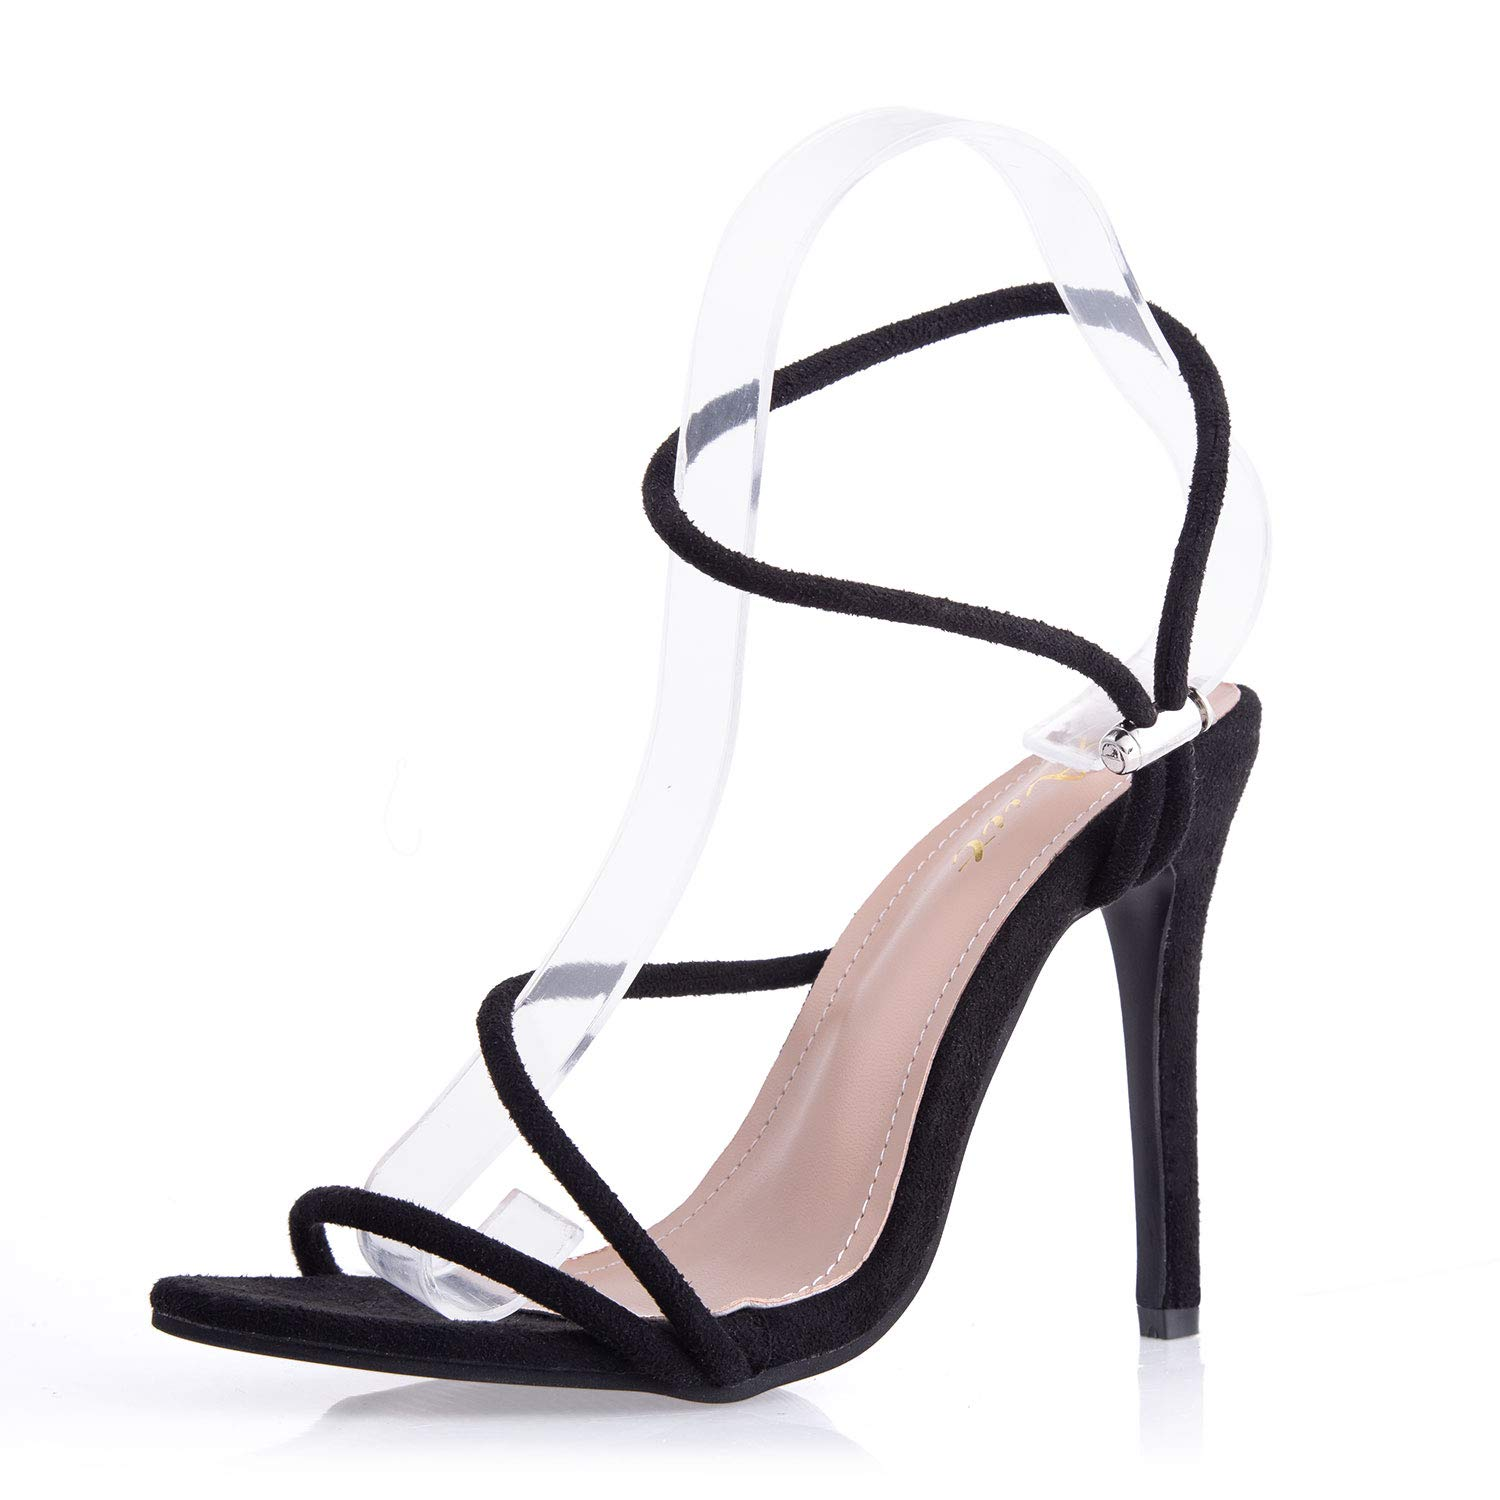 6ed146a11 AIIT Women's Stiletto High Heel Sandals Black Suede Multi Cross Ankle Strap  with Drawstring Buckle Elegant Open Toe Fashion Dress Party Wedding Shoes  for ...